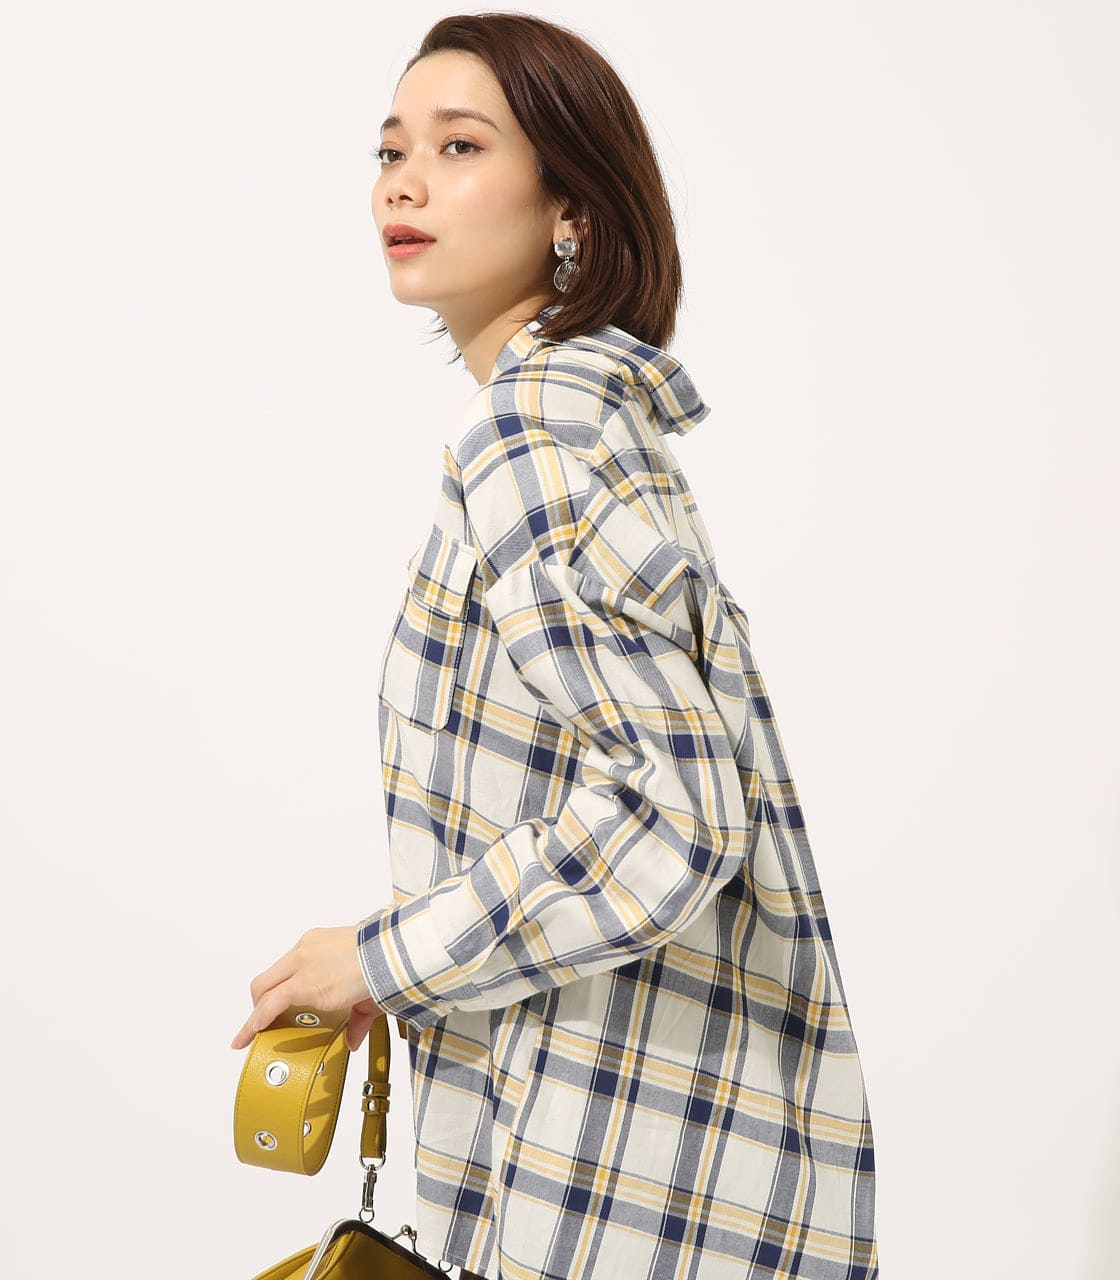 【AZUL BY MOUSSY】MADRAS CHECK SHIRT【MOOK50掲載 90135】 詳細画像 柄WHT 2